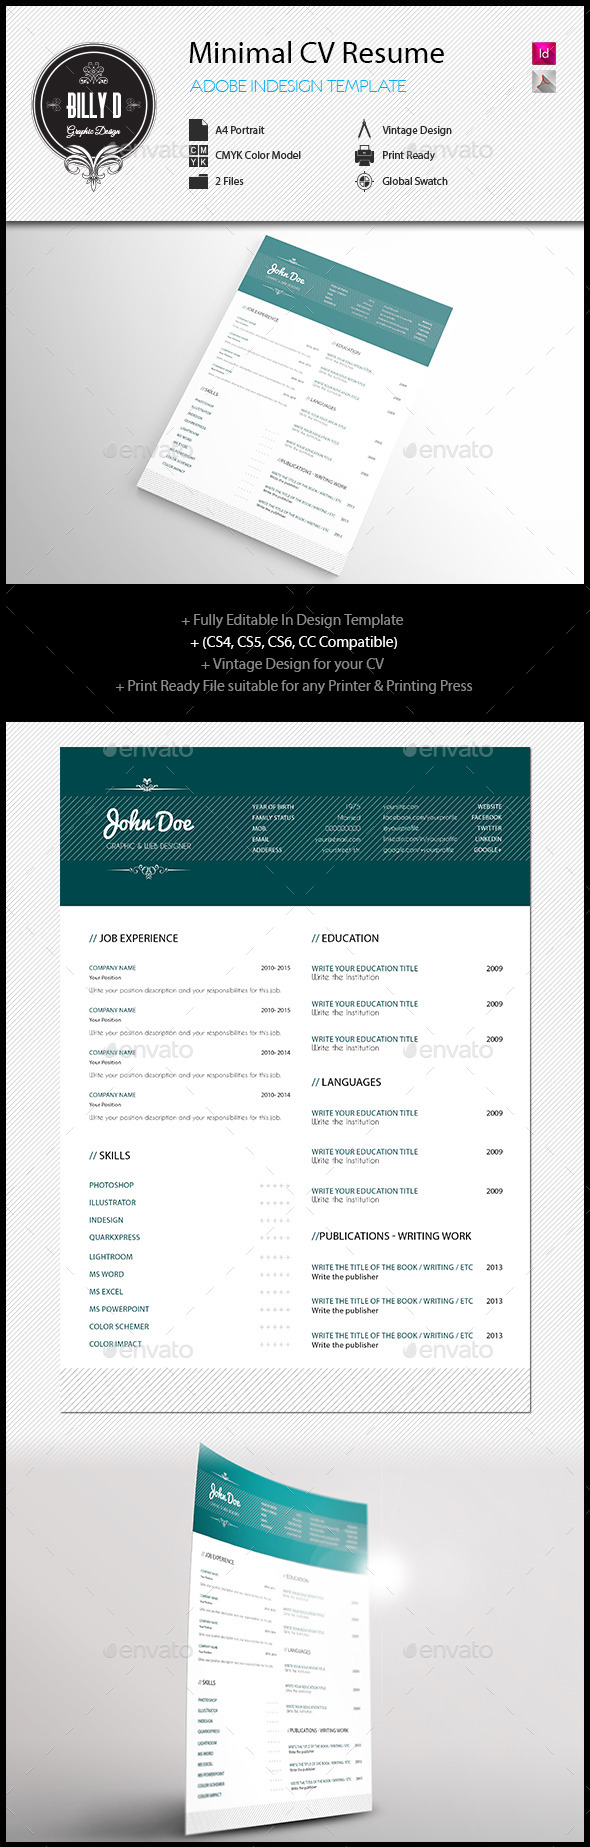 Minimal cv resume template indesign indd download here http minimal cv resume template indesign indd download here httpgraphicriver yelopaper Images